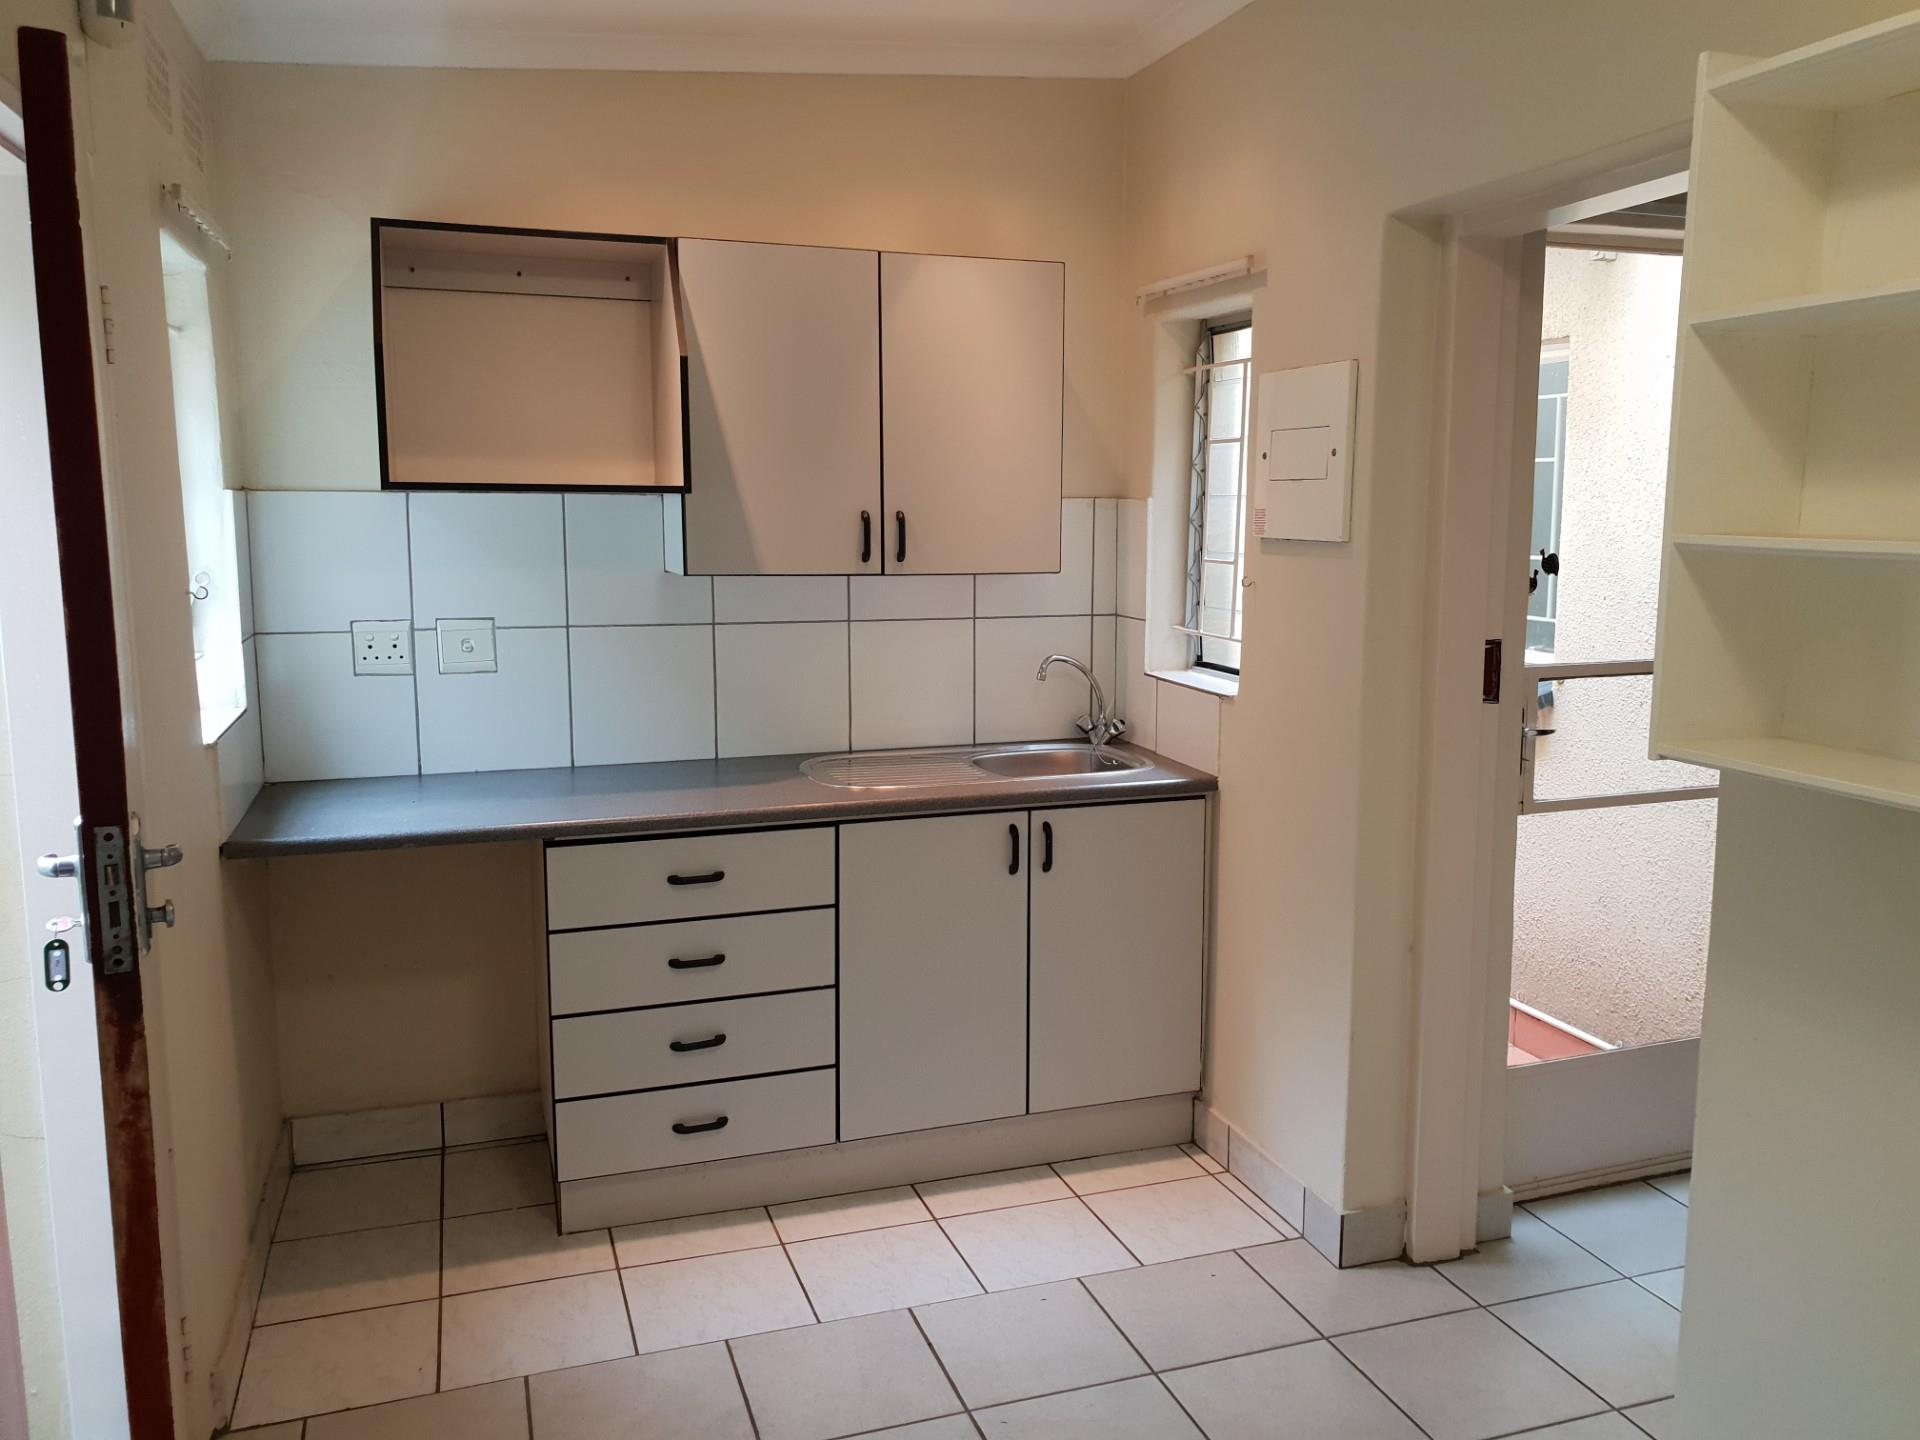 1 Bedroom House To Rent in Colbyn